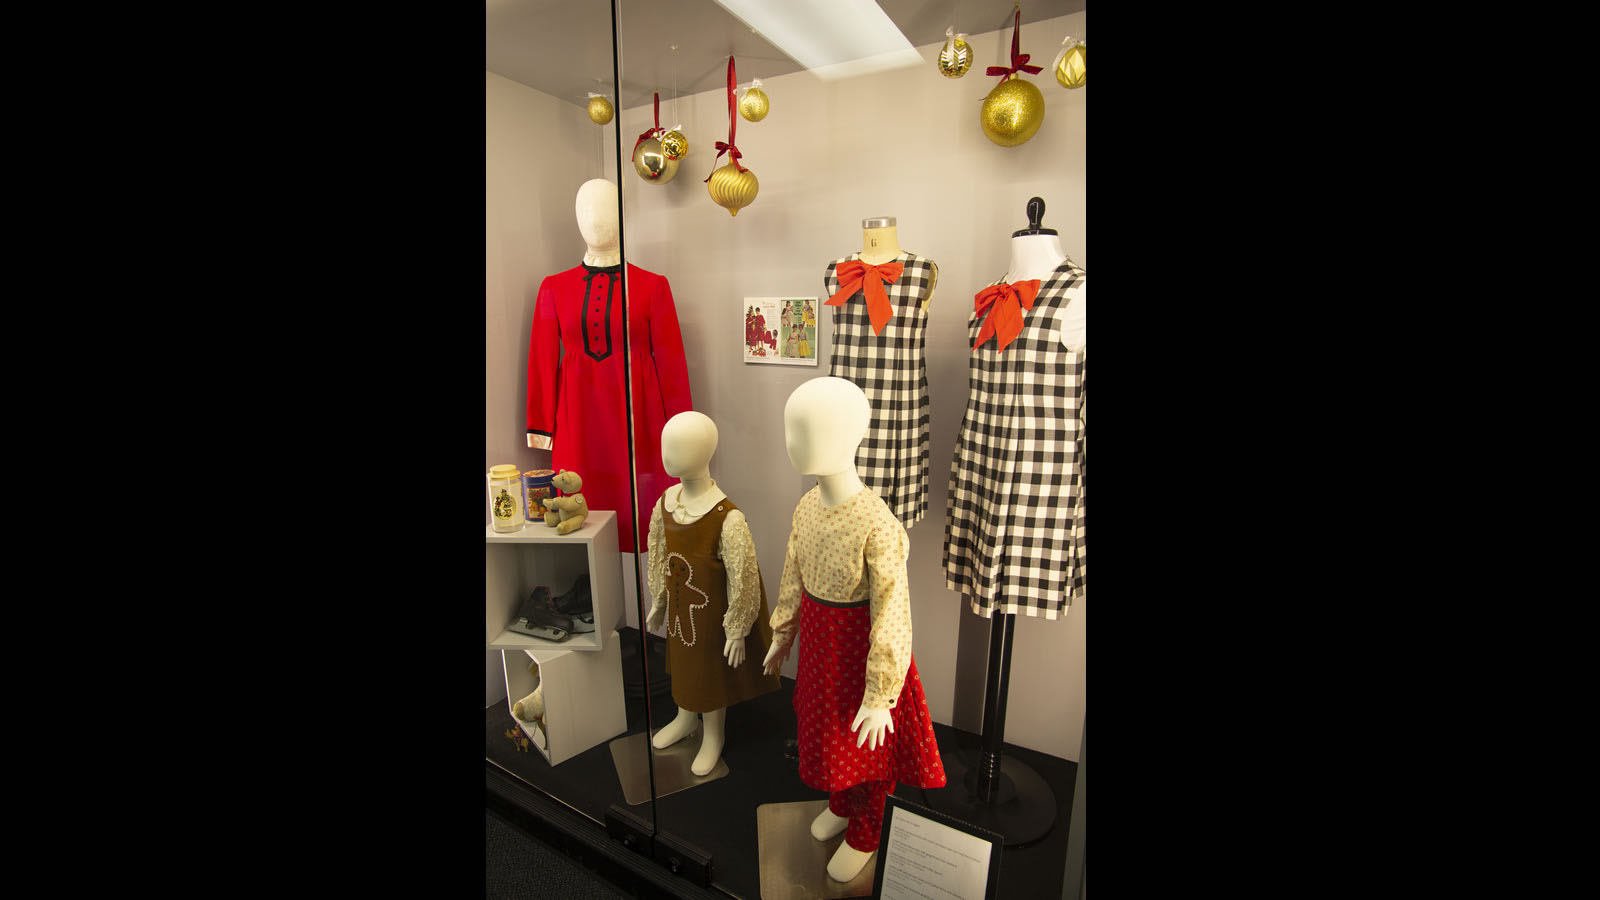 Playing Dress Up Virtual Tour Of Student Exhibition In Department Of Textiles Merchandising Fashion Design College Of Education And Human Sciences